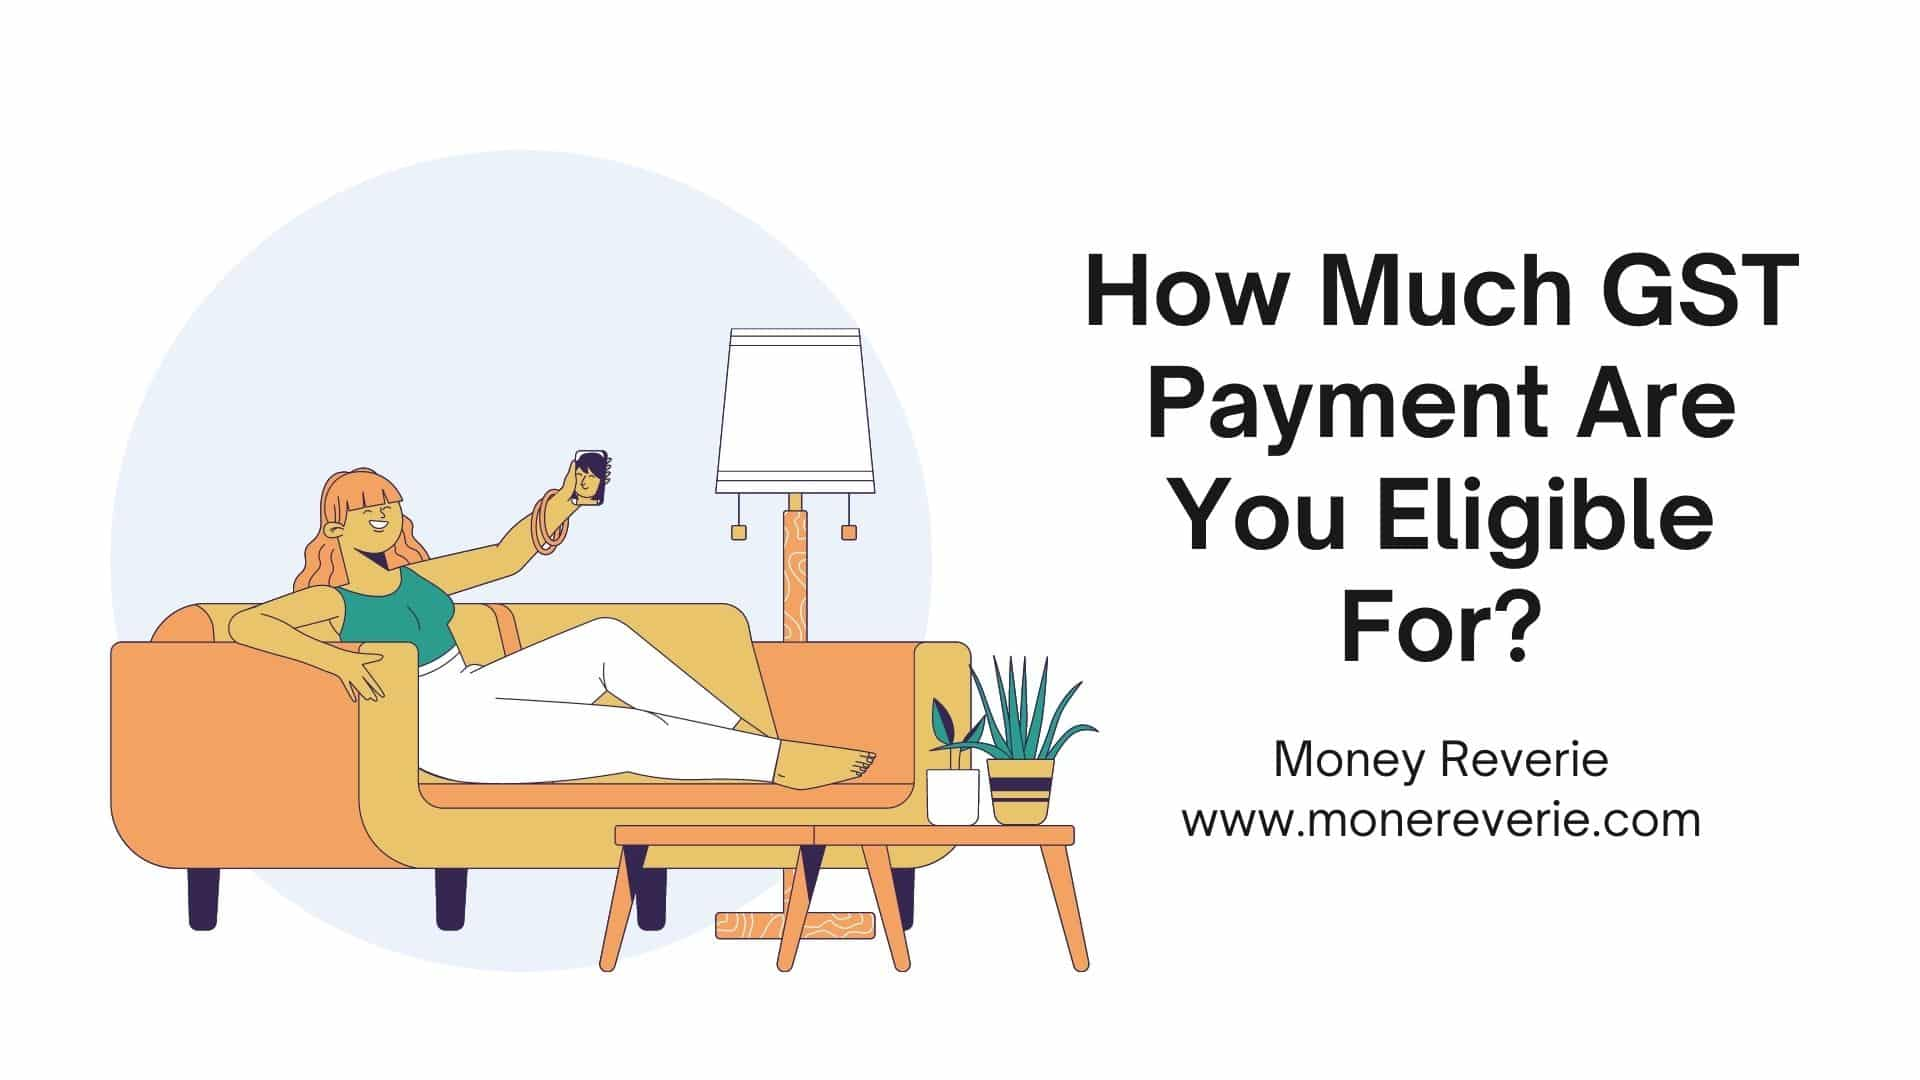 How much GST payment are you eligible for?